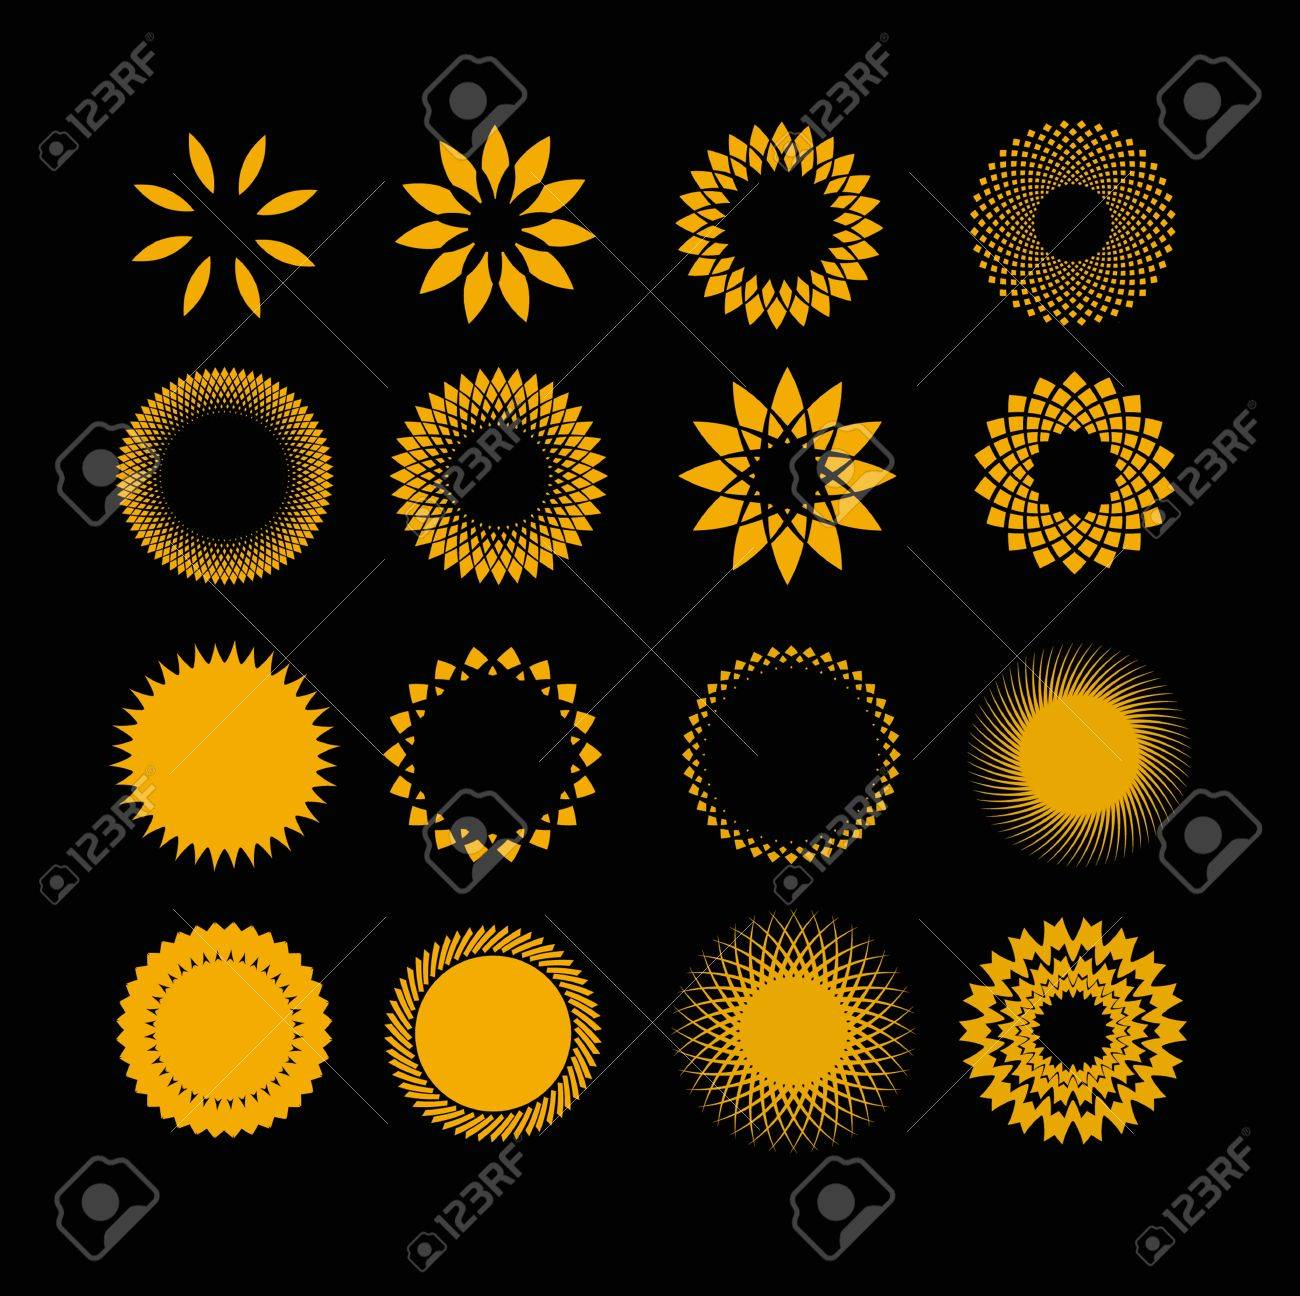 Symbols Sun In Set Royalty Free Cliparts Vectors And Stock